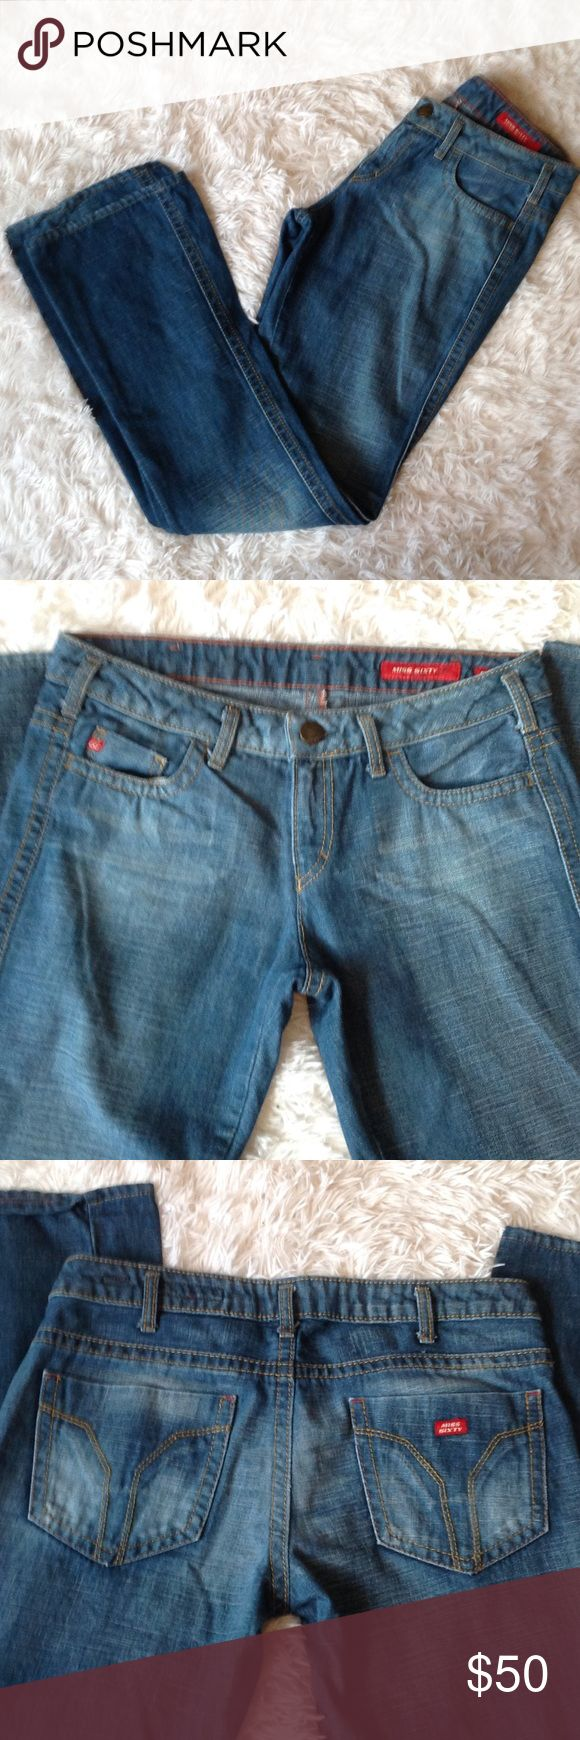 """Miss Sixty basic Italy Jeans Like new pair of medium wash jeans. Great fitting Italian jeans. Inseam 33"""". Size 29. Please ck size chart comparison. They run small. These are in great condition. Miss Sixty Jeans Boot Cut"""